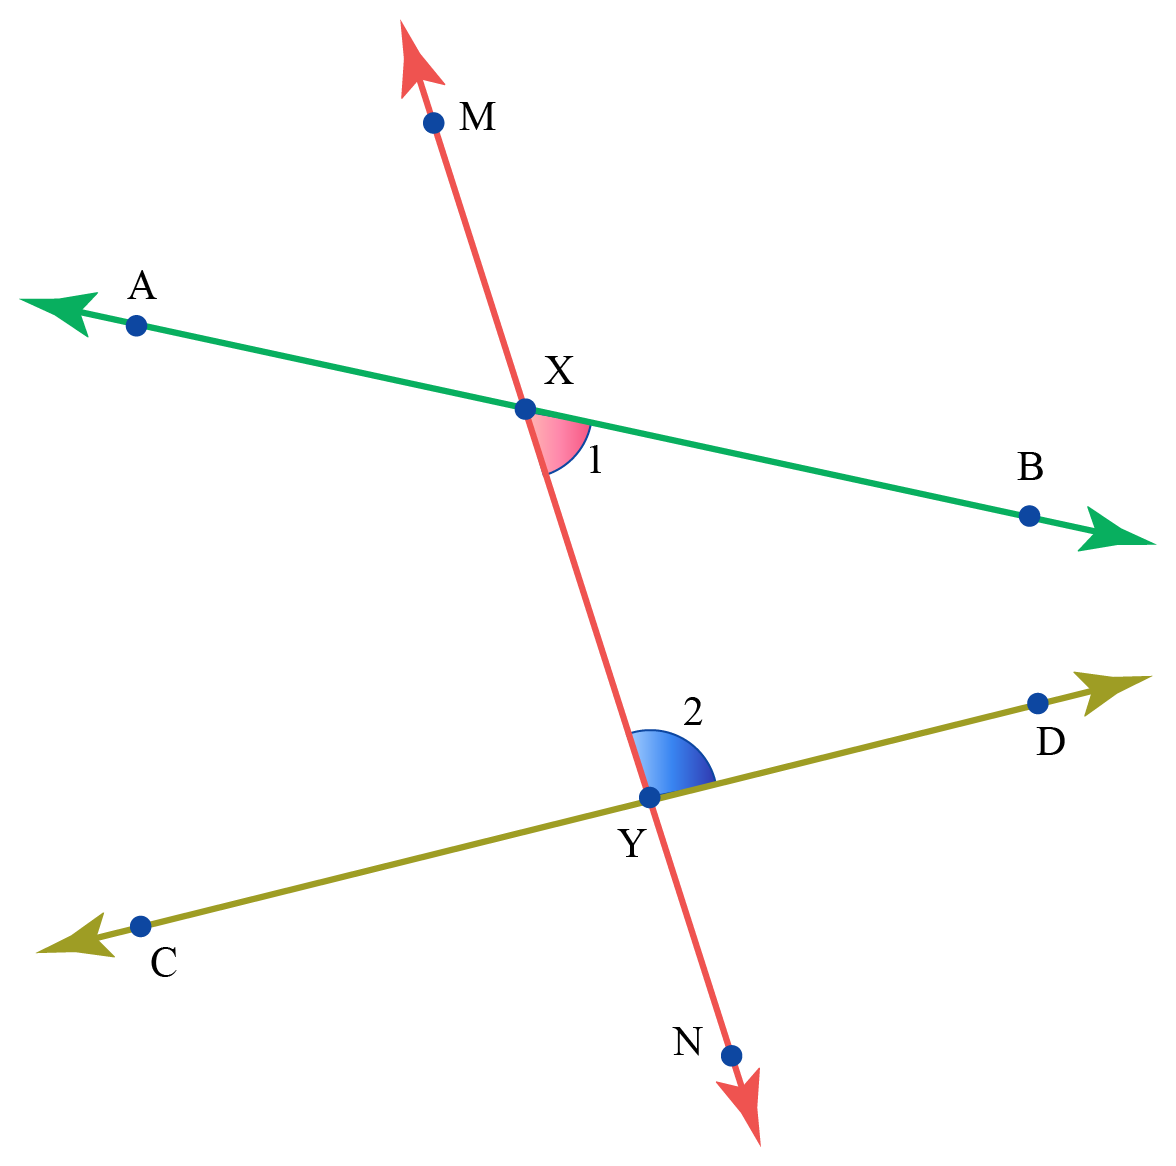 examples of co-interior angles